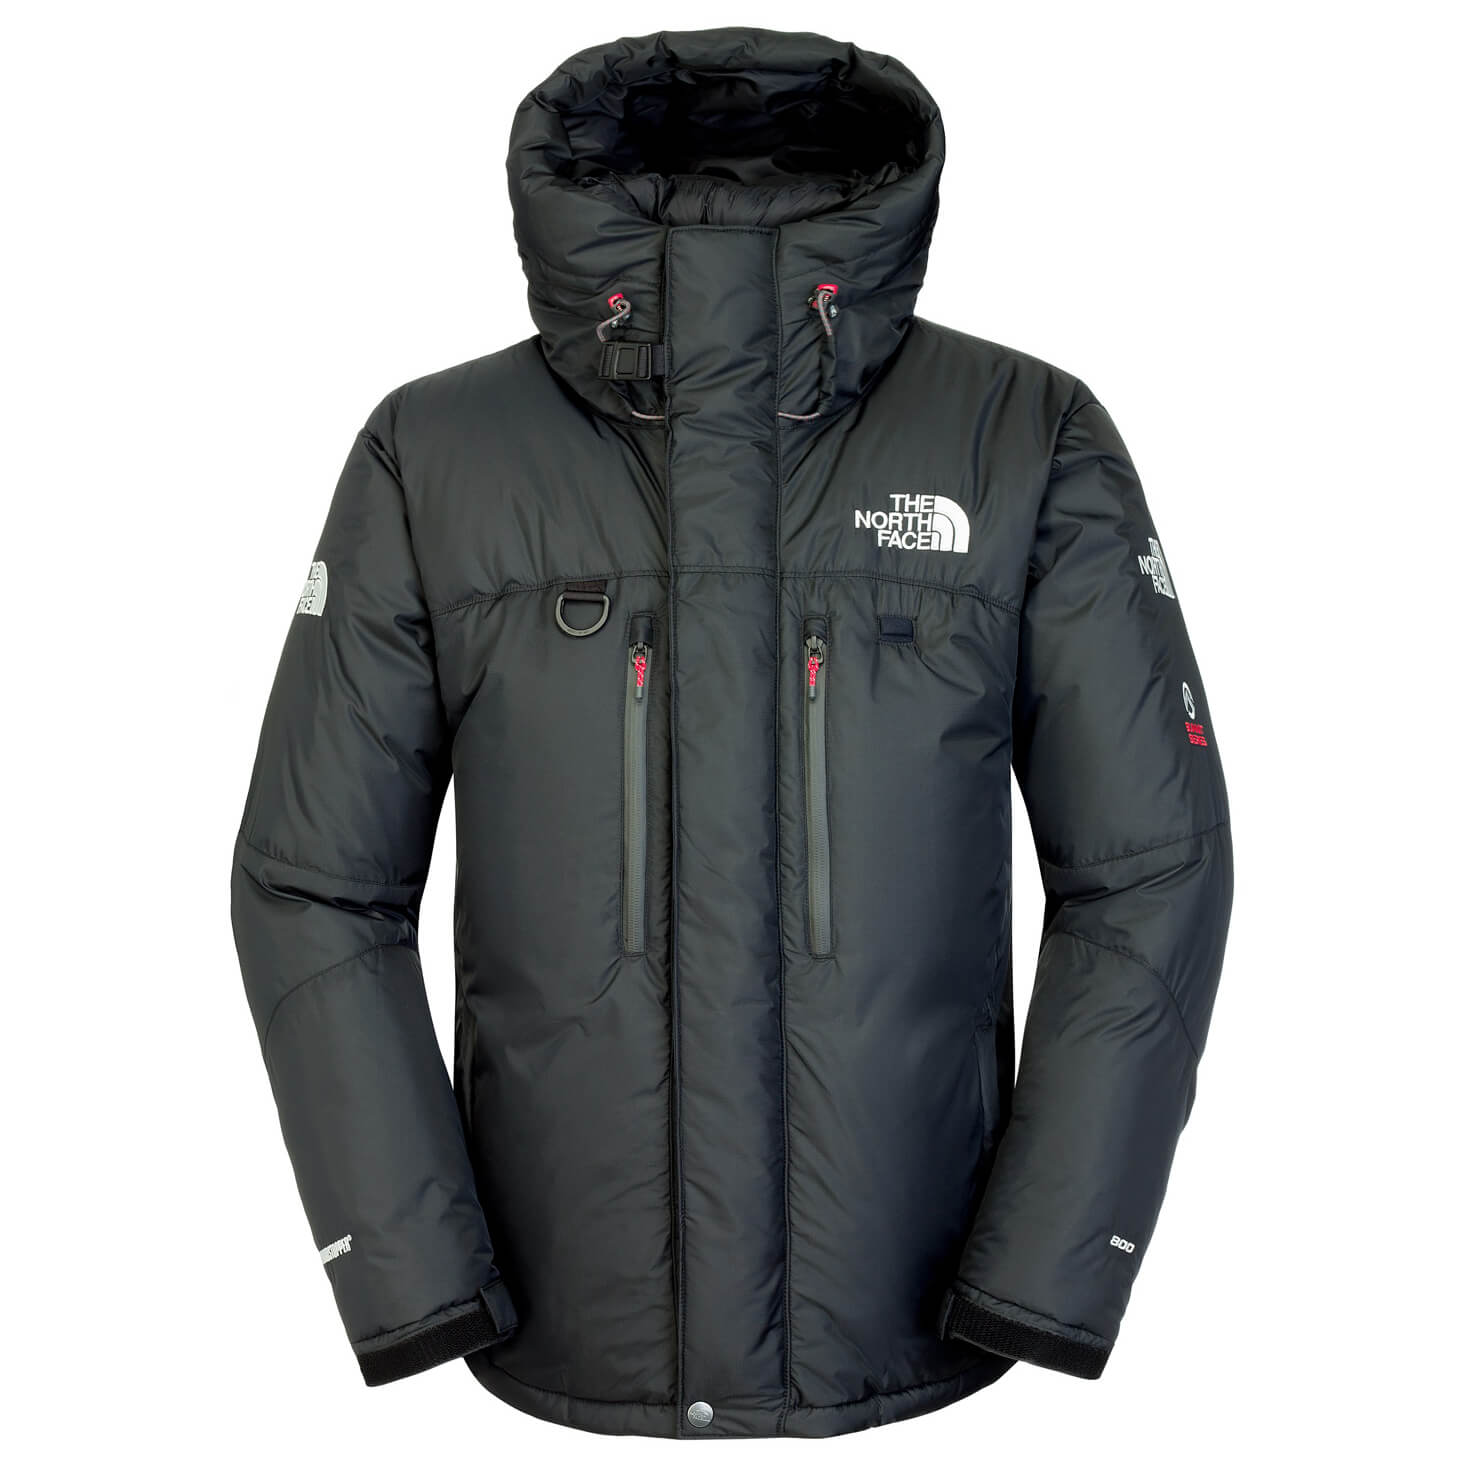 the north face himalayan parka daunenjacke. Black Bedroom Furniture Sets. Home Design Ideas